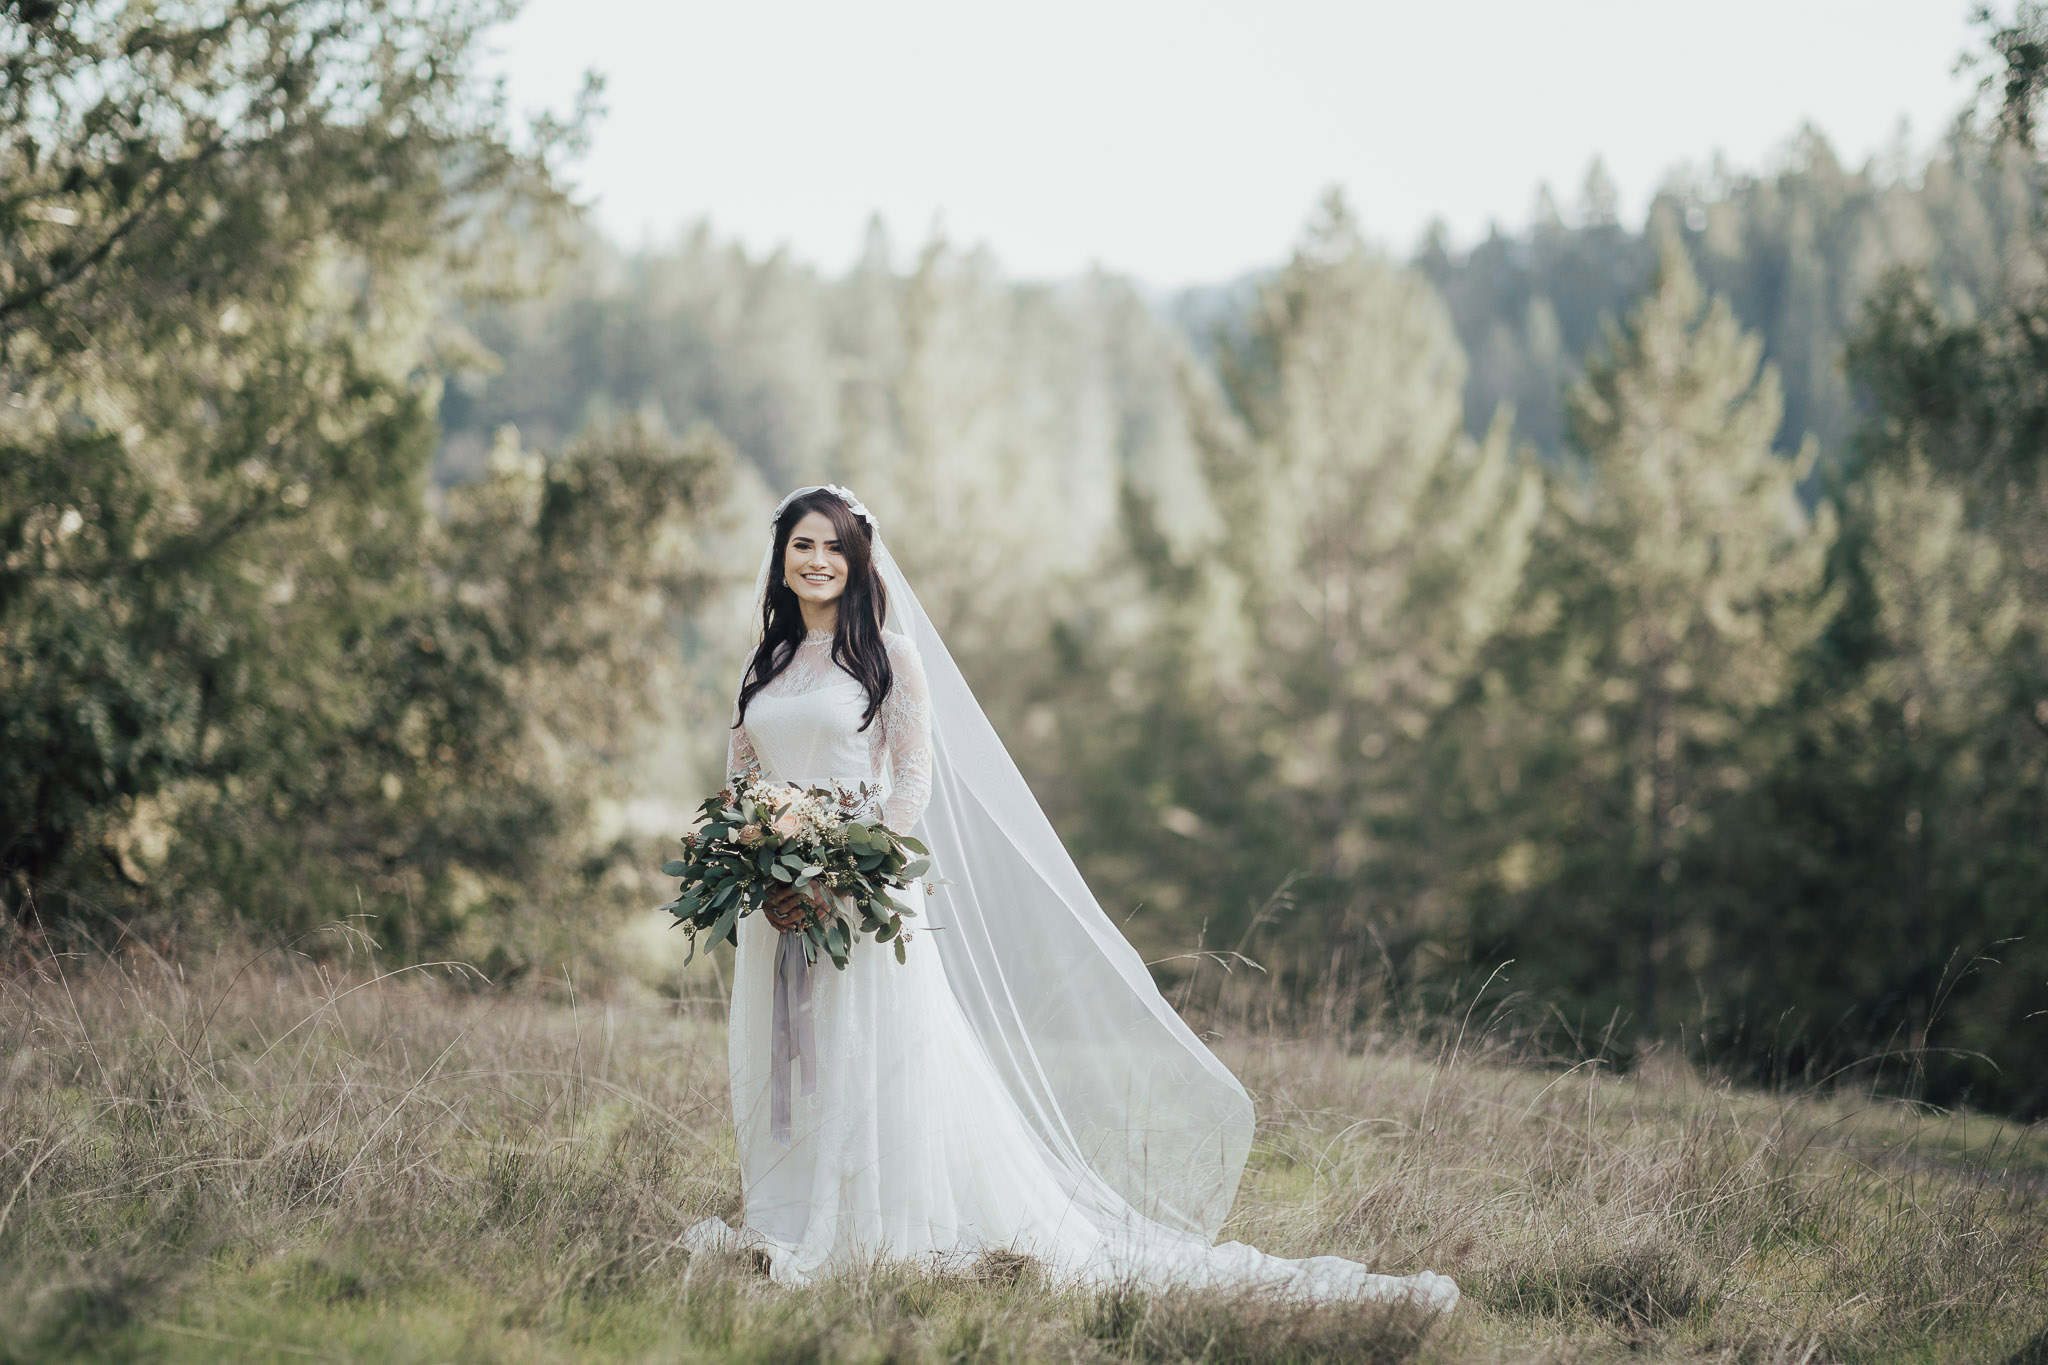 Classic long sleeves wedding dress - Anna Skoblikova